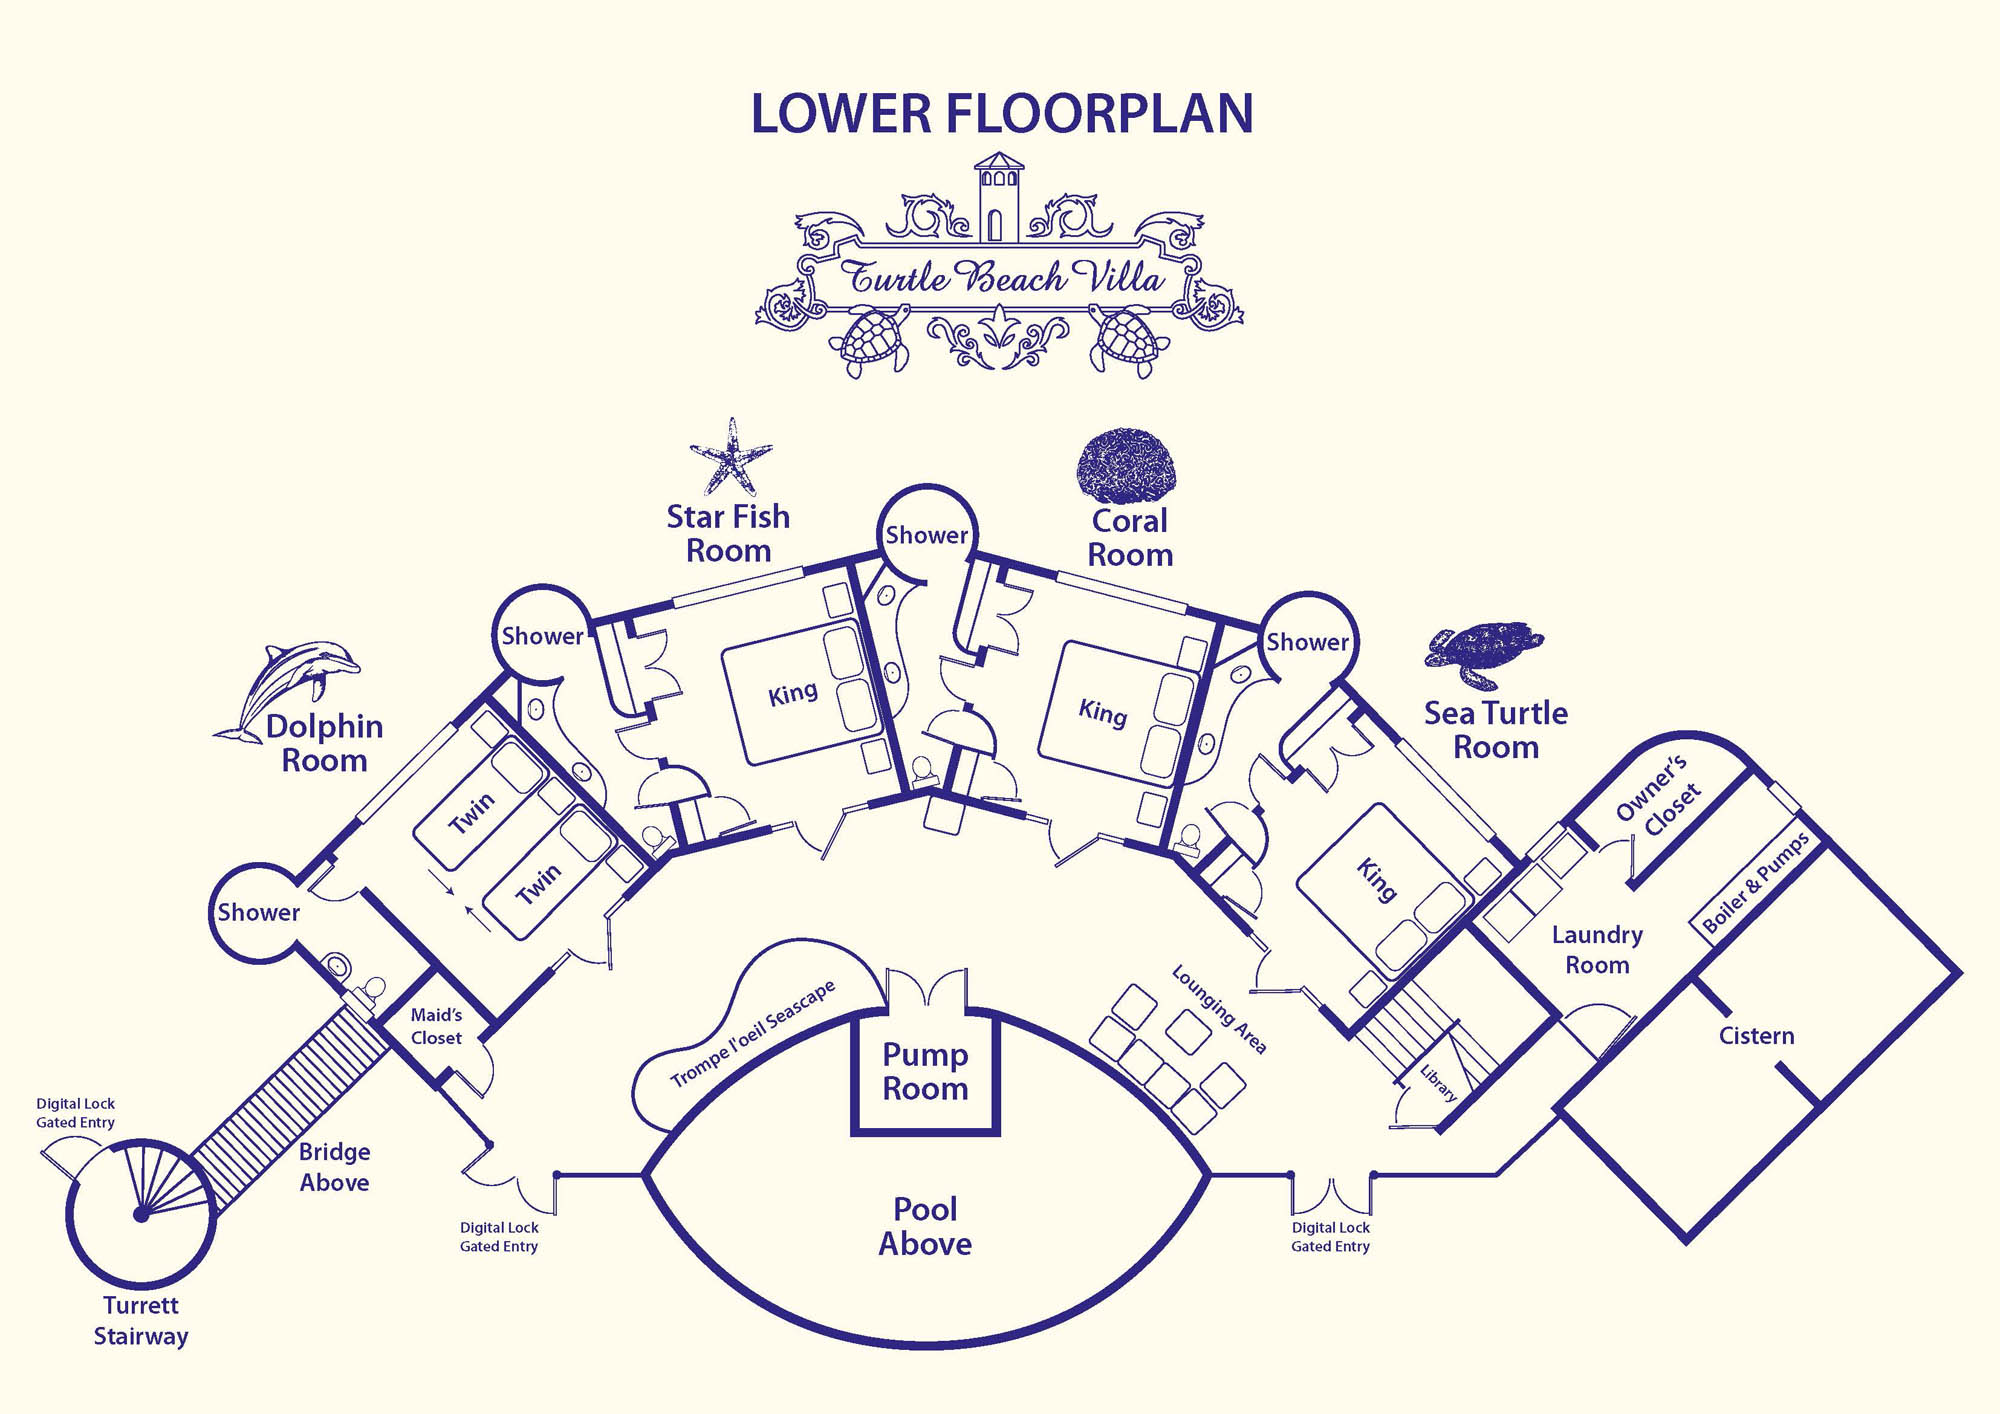 The lower level floorplan of Turtle Beach Villa, Grace Bay Beach, Providenciales (Provo), Turks and Caicos Islands.